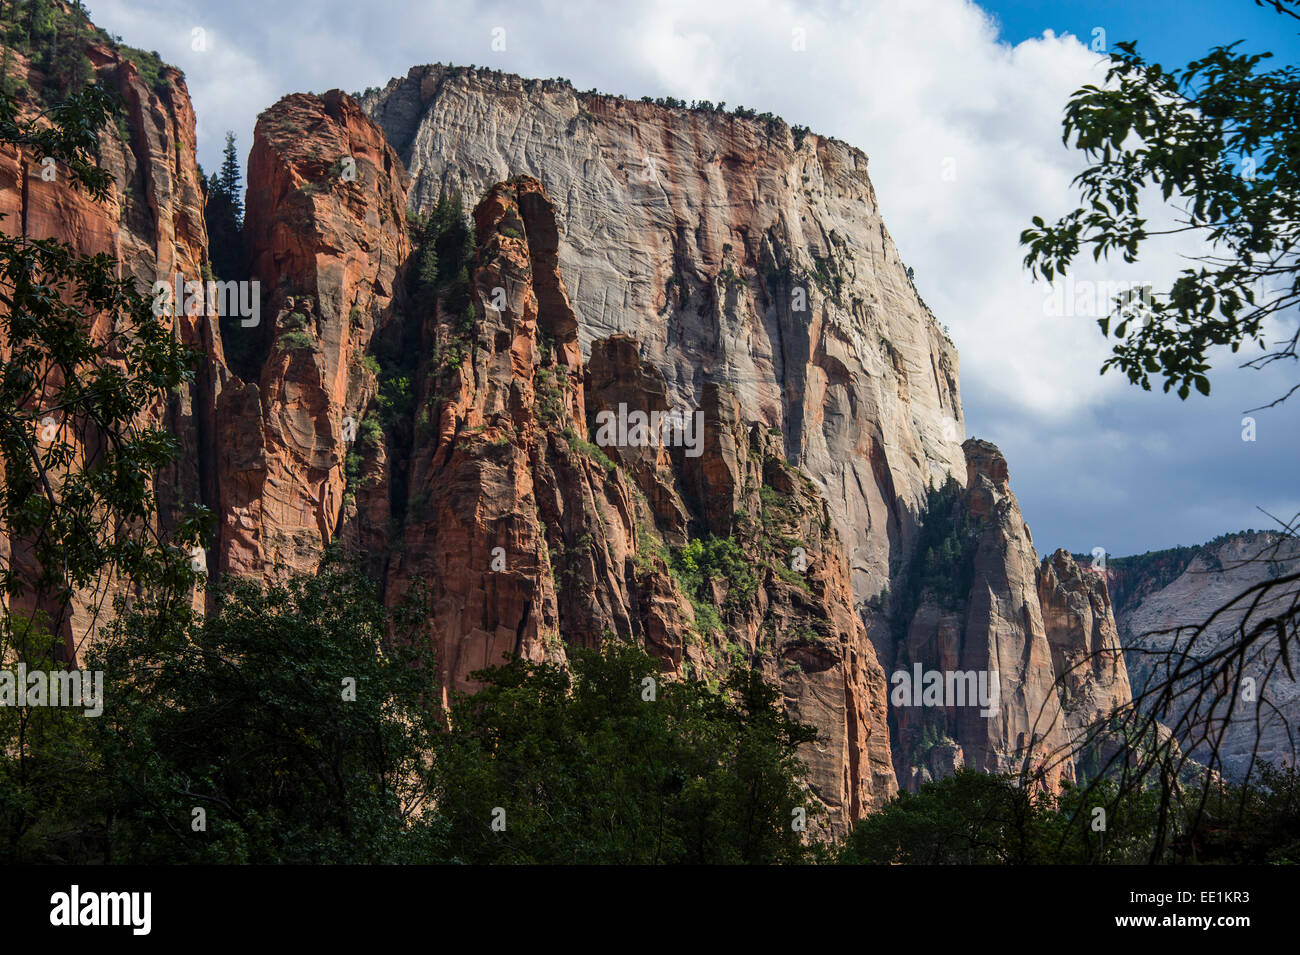 The towering cliffs of the Zion National Park, Utah, United States of America, North America - Stock Image